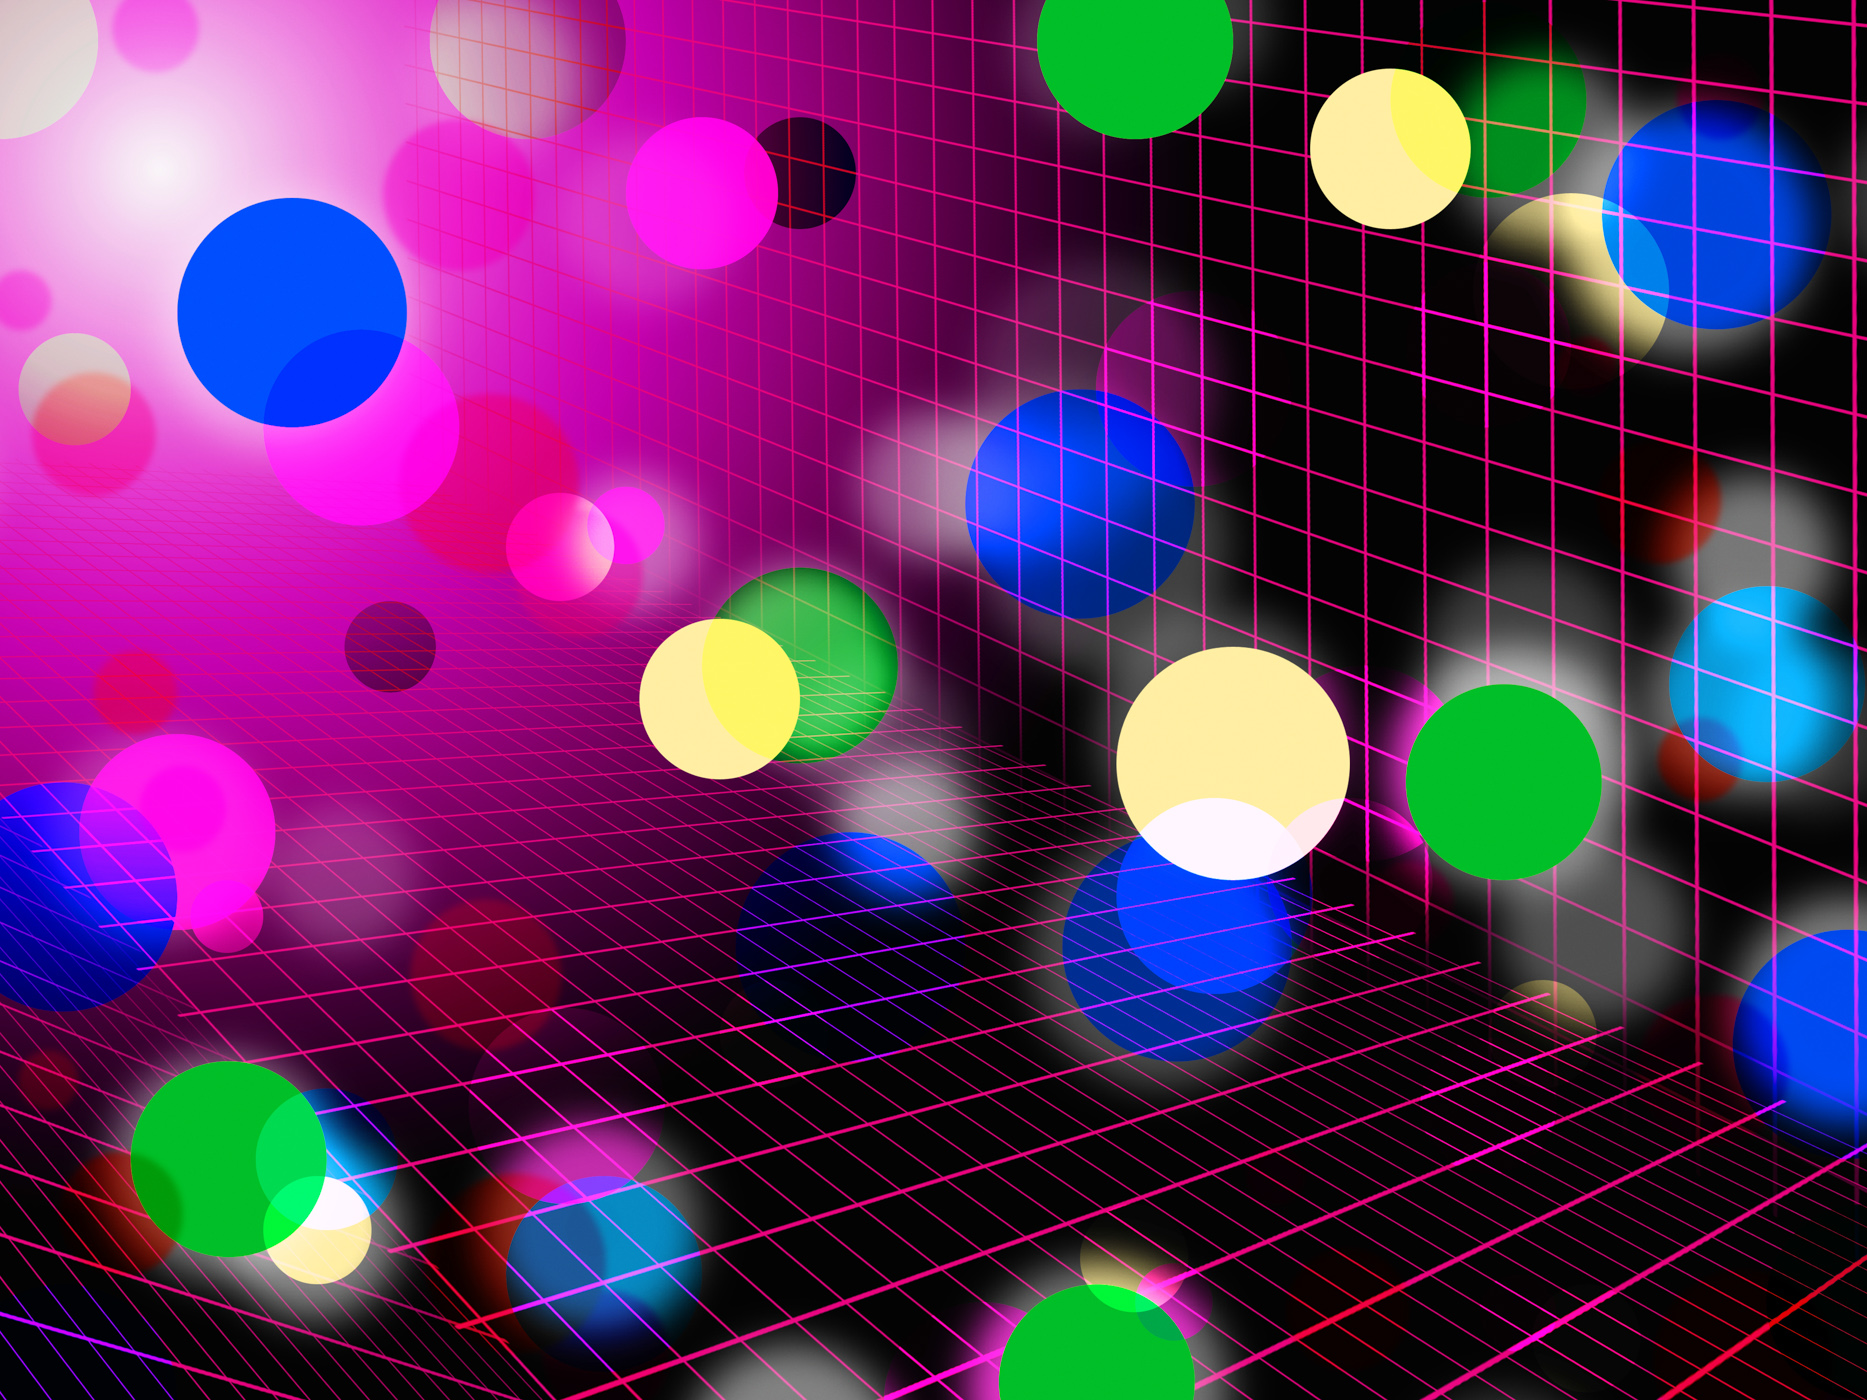 Pink bubbles background shows circles grid and shining photo